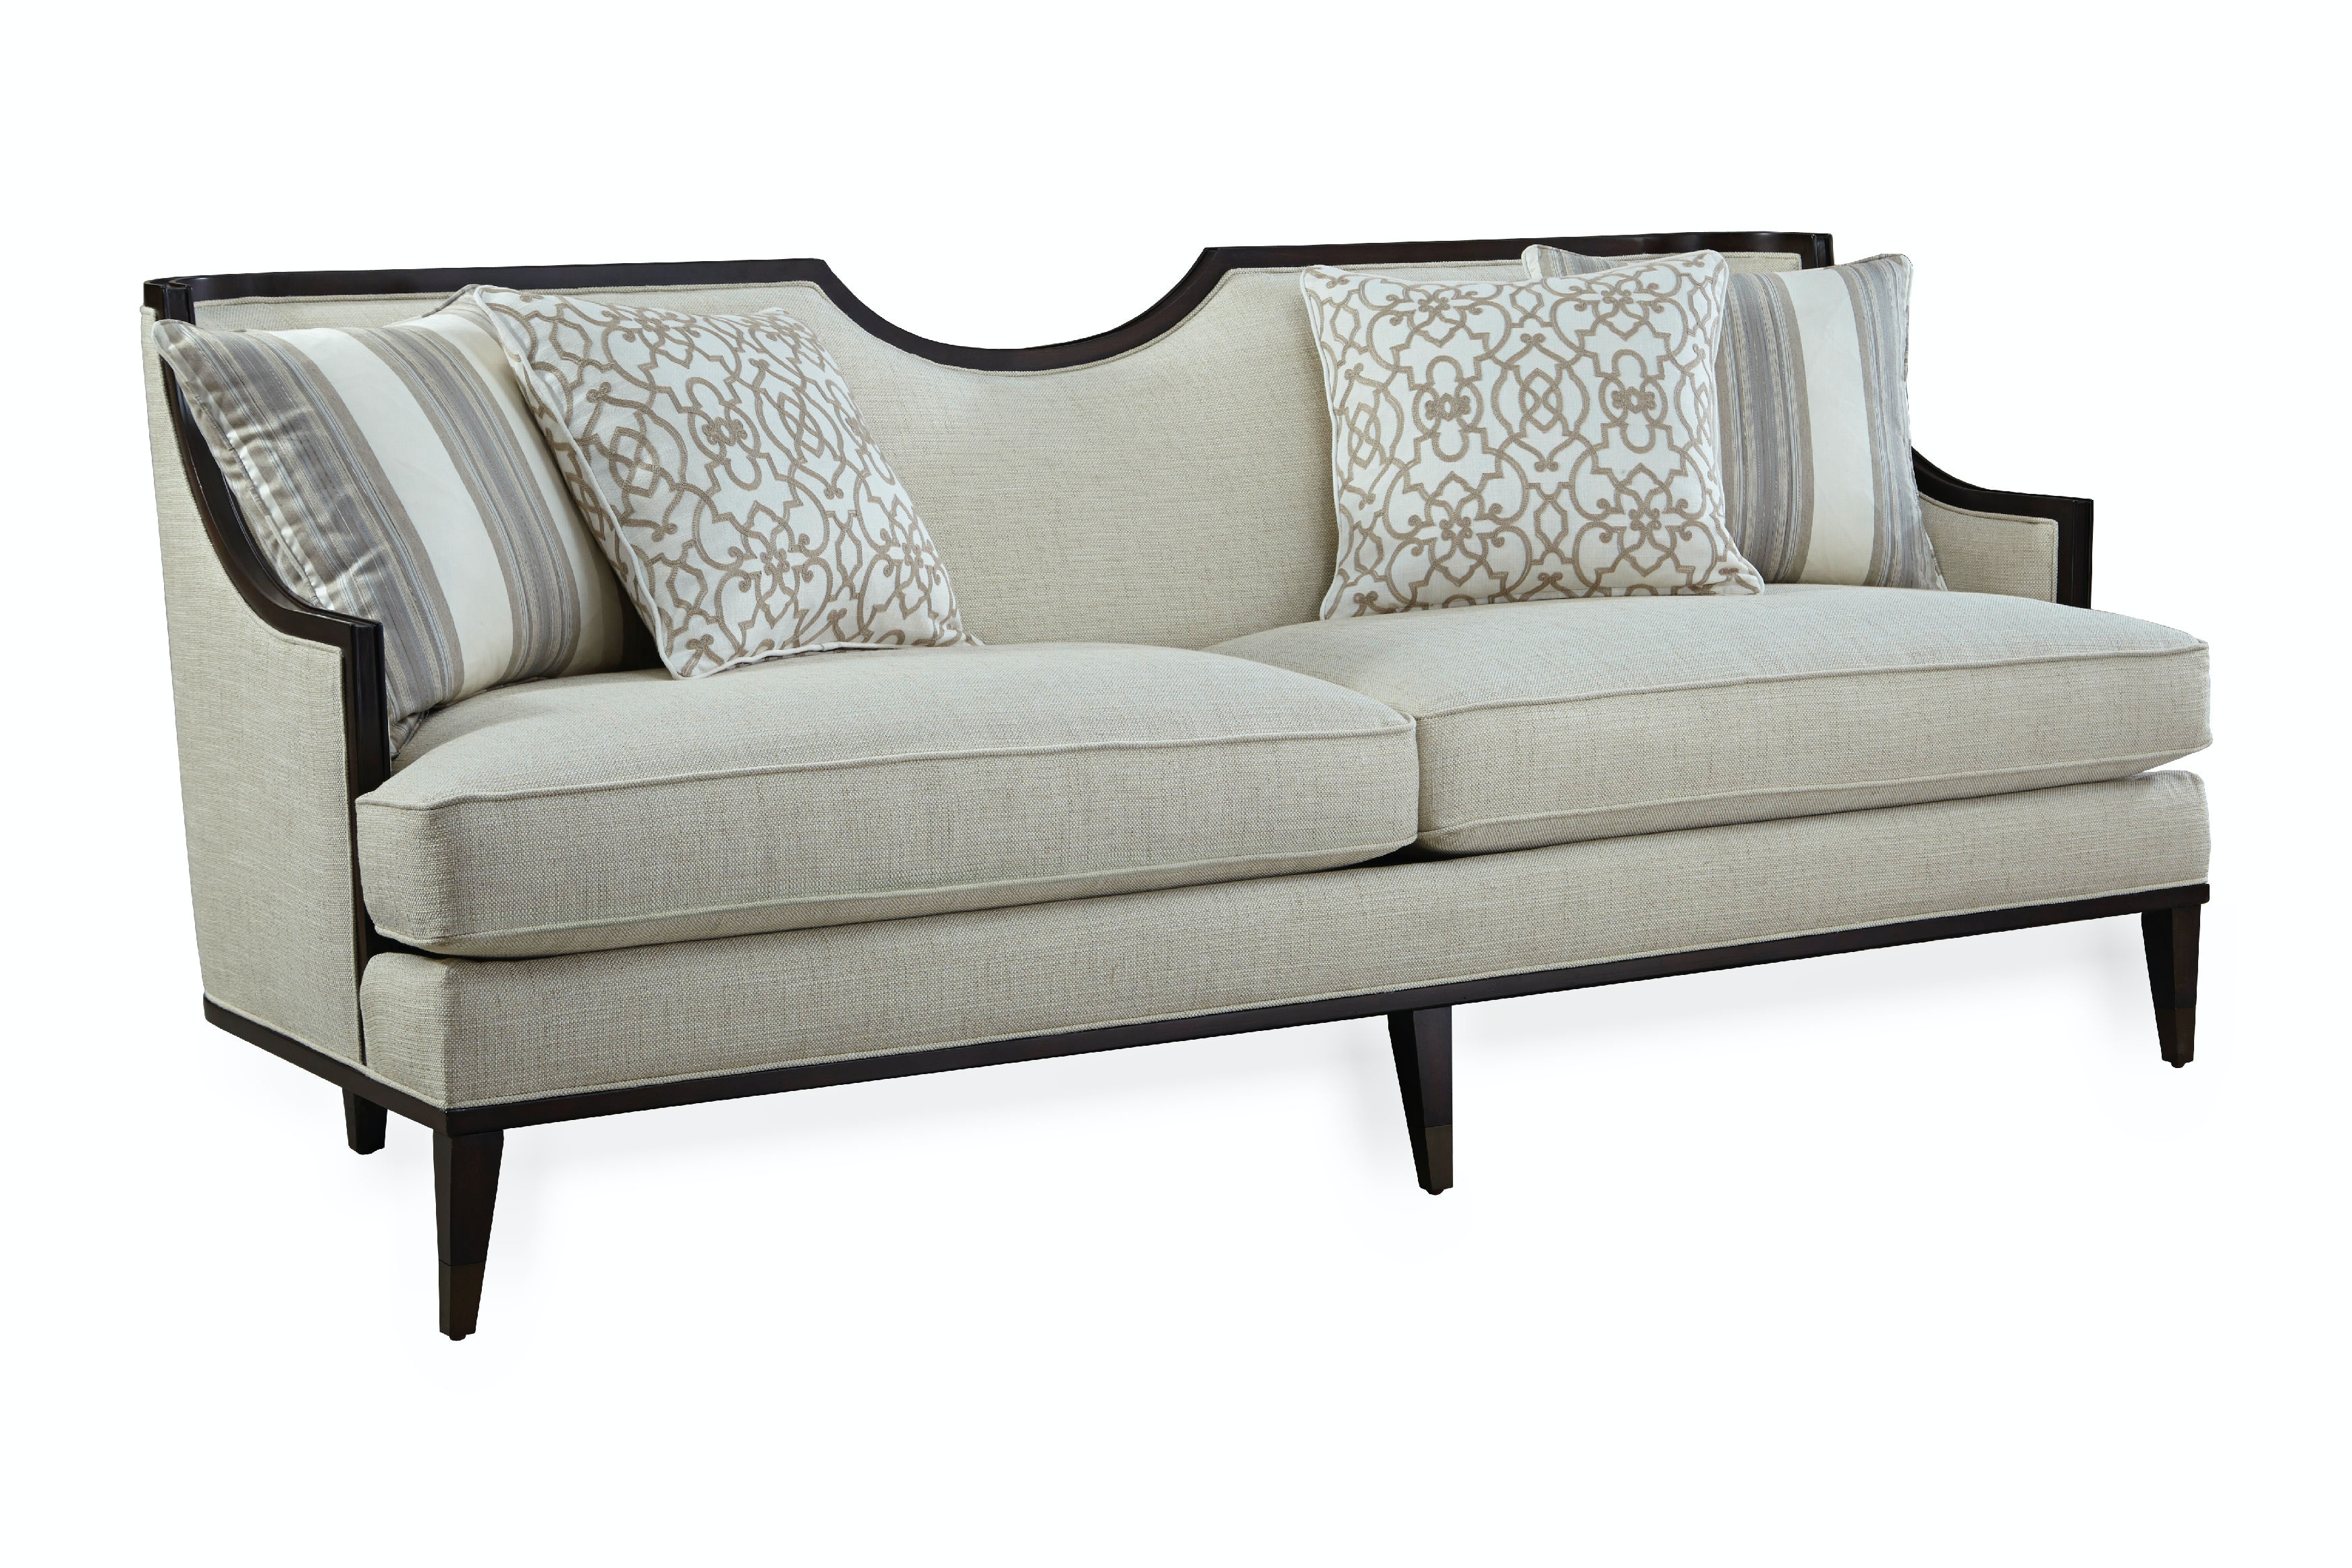 ART Furniture Sofa 161501 5336AA